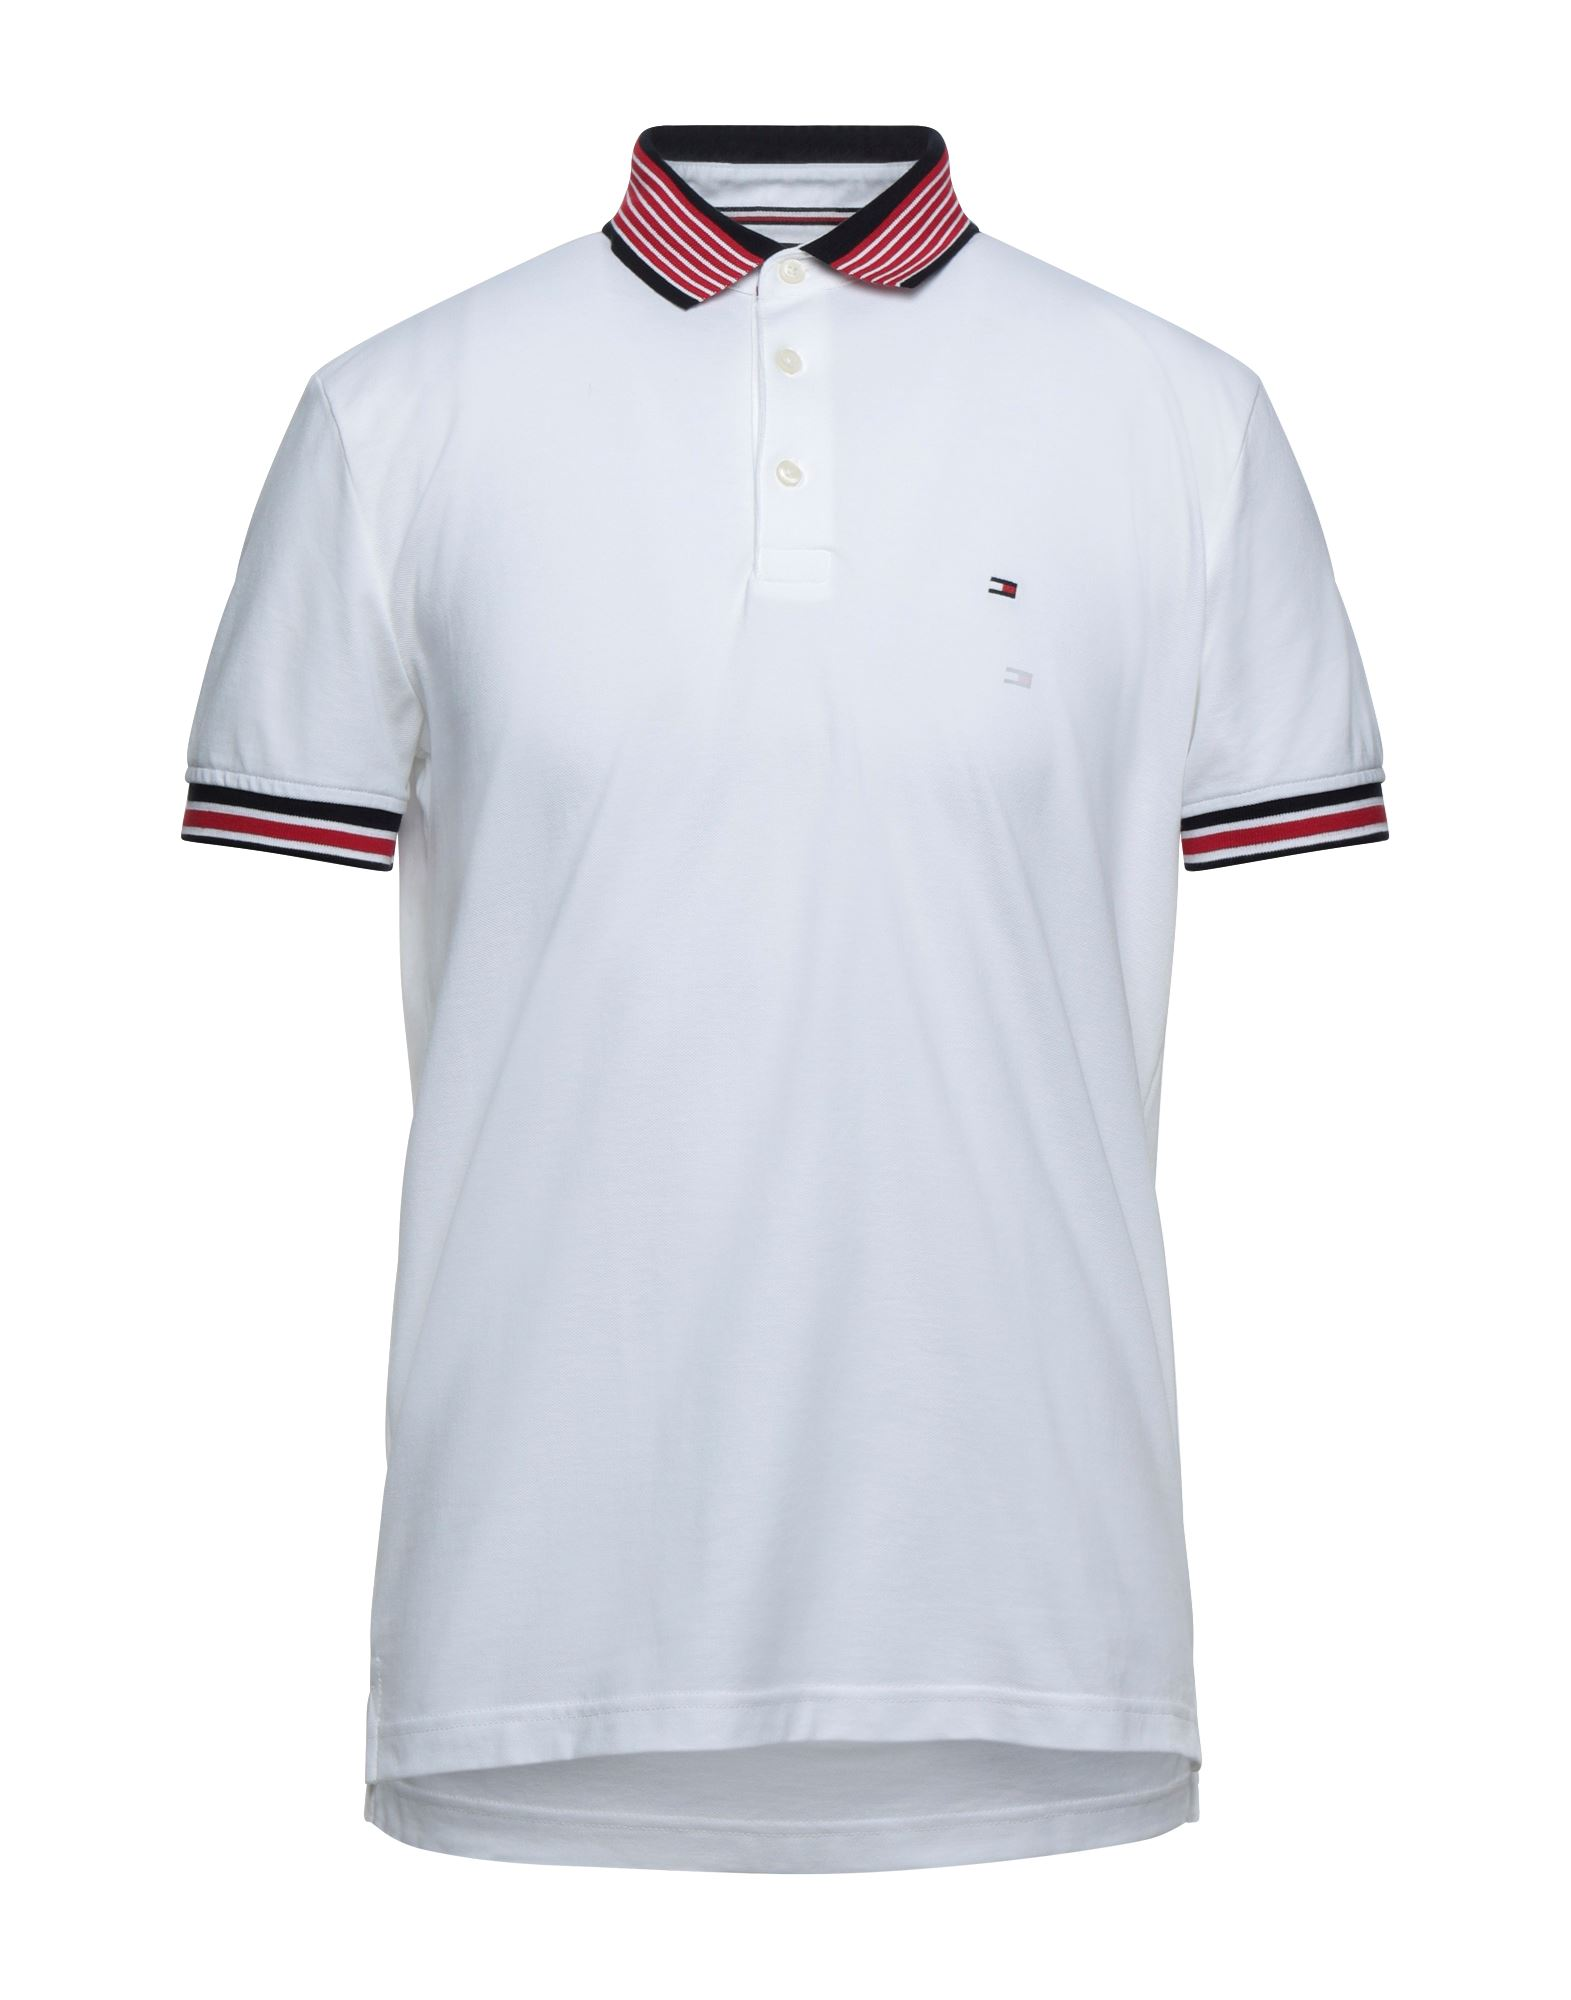 TOMMY HILFIGER Polo shirts - Item 12542722